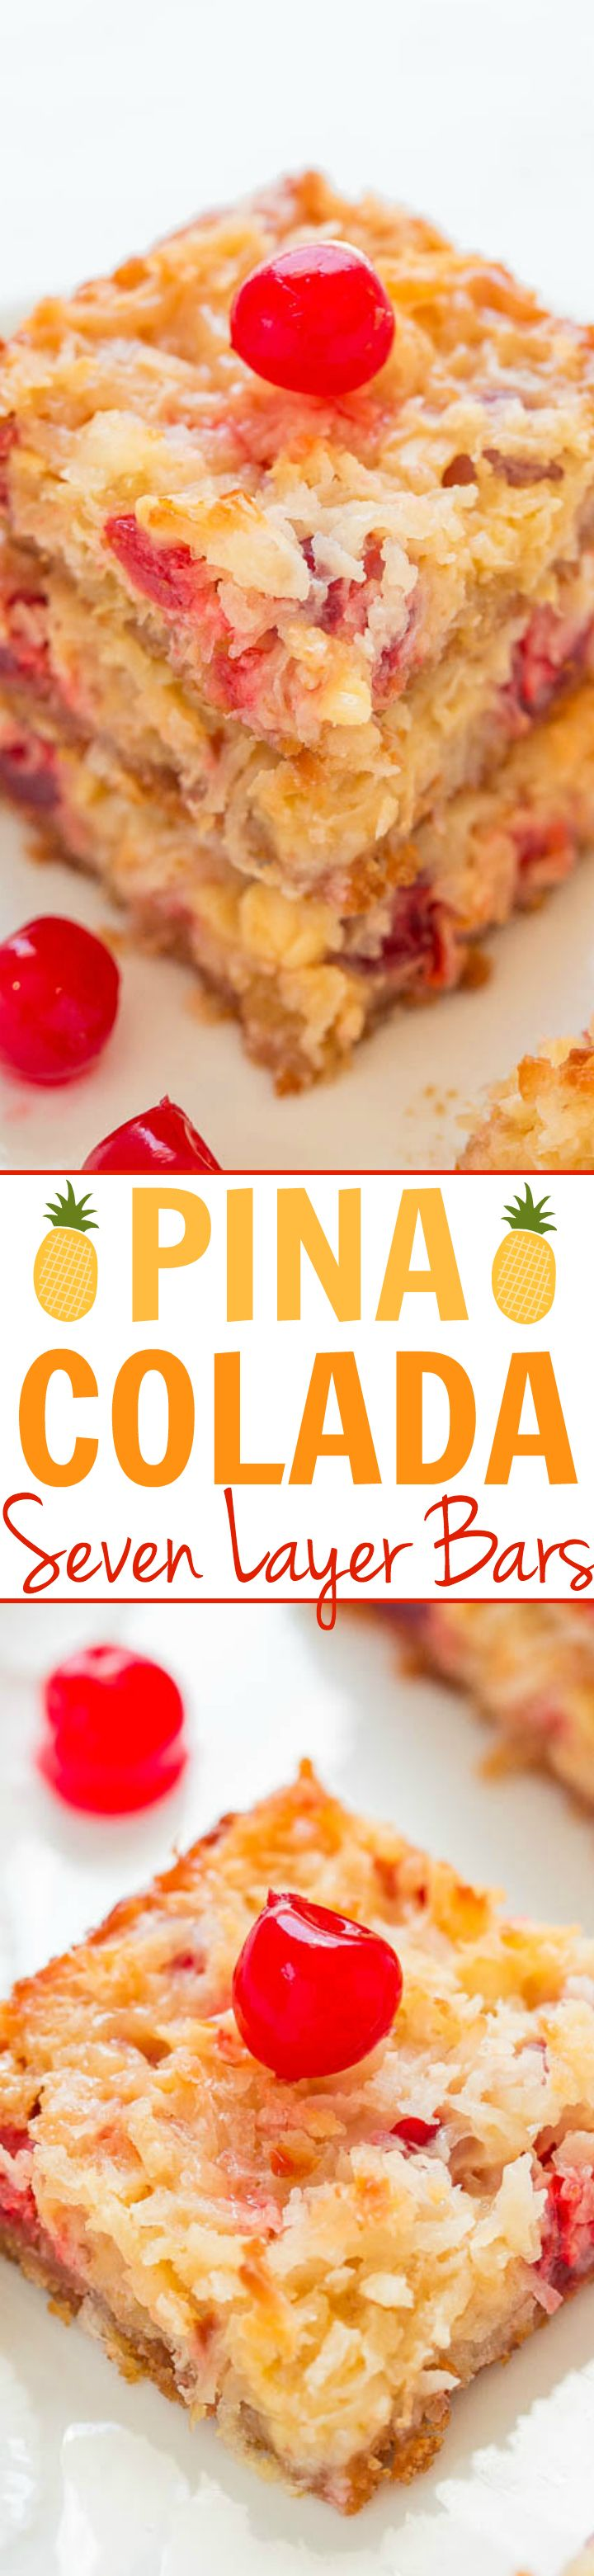 Pina Colada Seven Layer Bars - Eat your pina colada rather than drinking one with these fast, EASY, no-mixer bars that taste TROPICAL!! Pineapple, coconut, white chocolate, and cherries!!